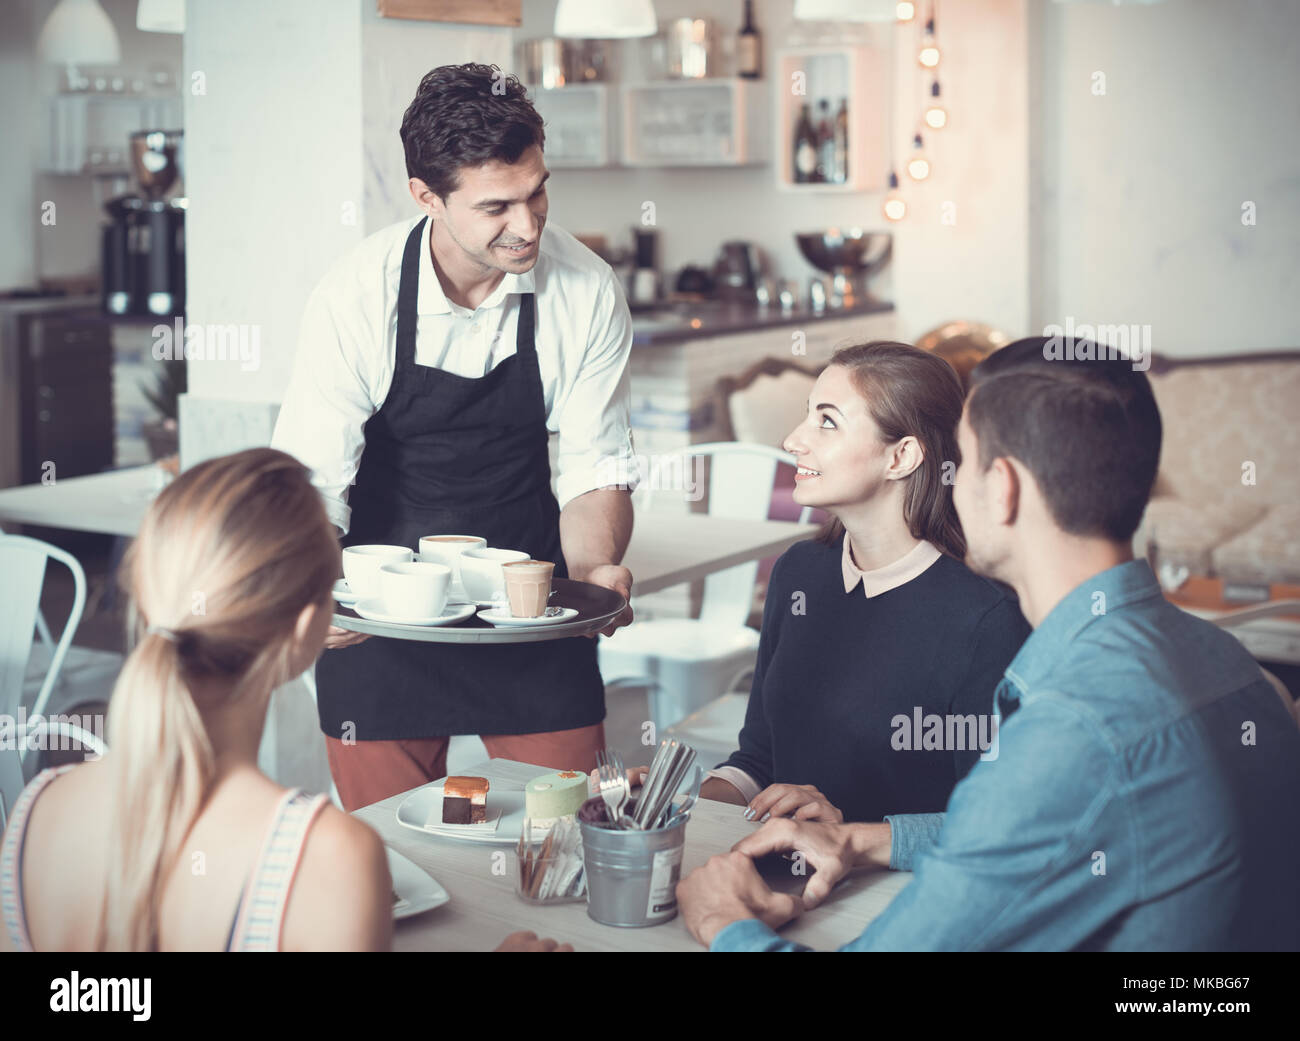 Polite smiling waiter bringing ordered dishes to friends in tearoom of a cozy confectioner's shop - Stock Image